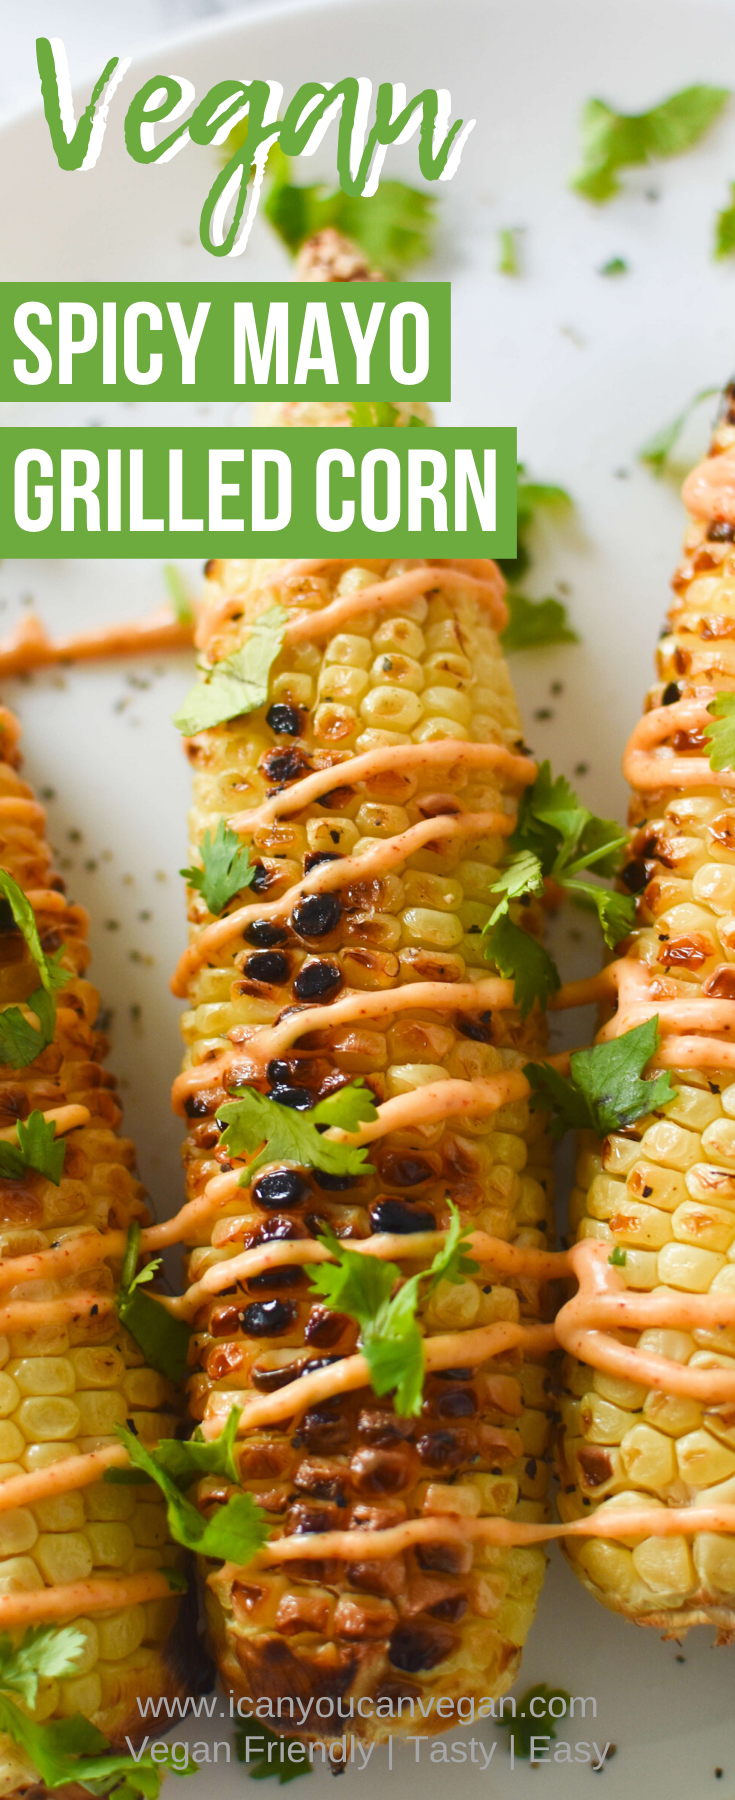 Spicy Mayo Grilled Corn Pinterest